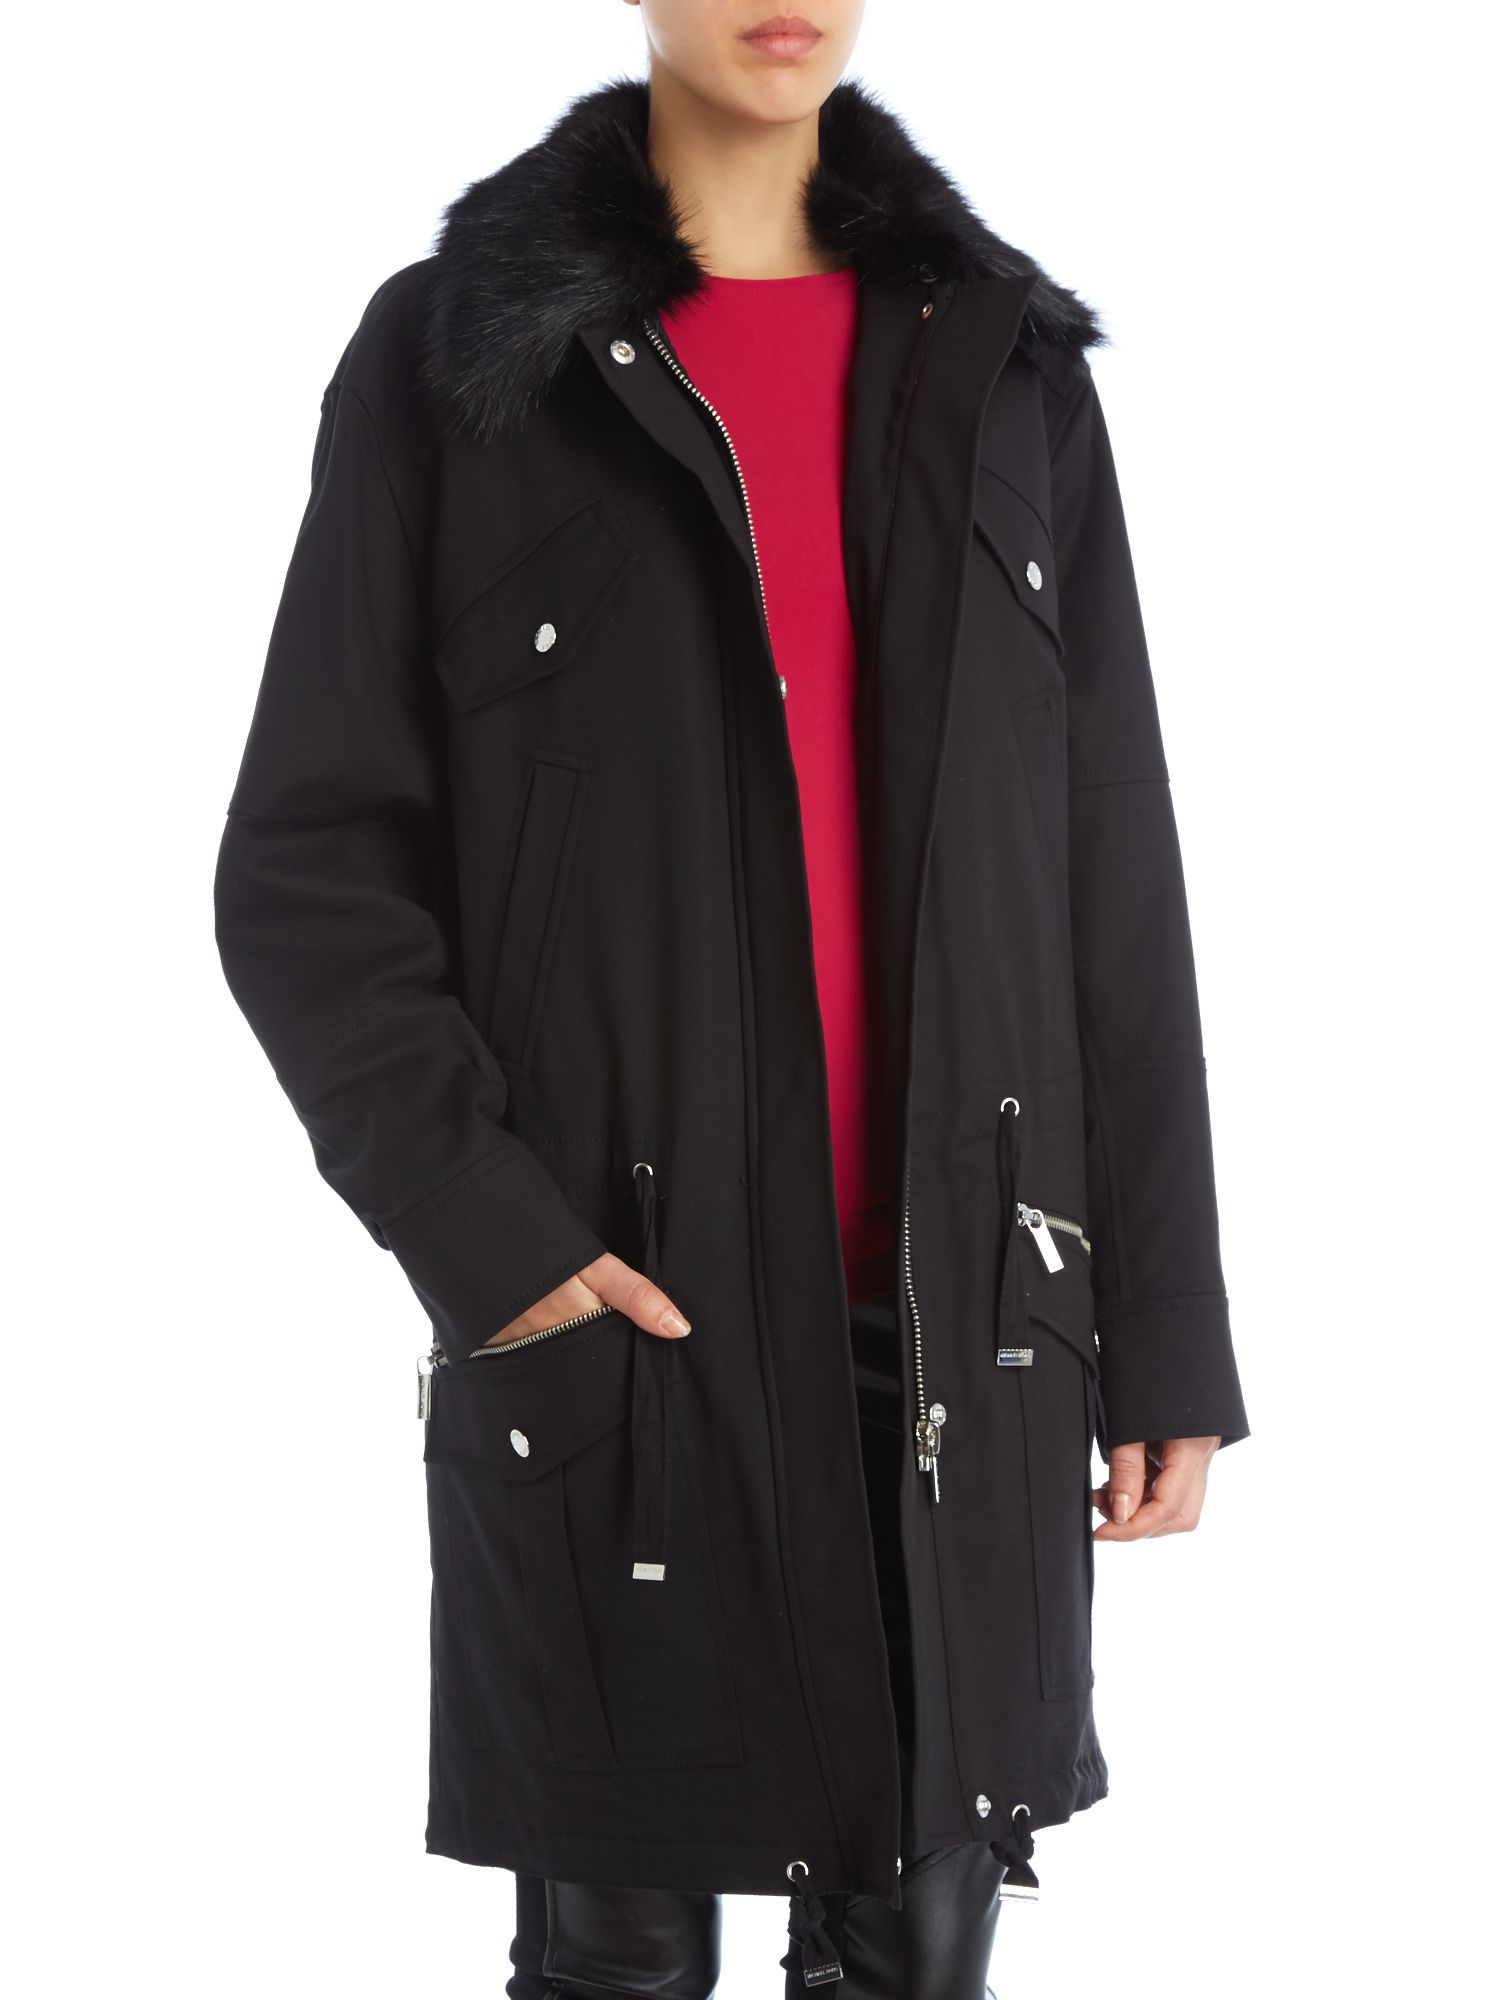 Parka jacket with faux fur trim